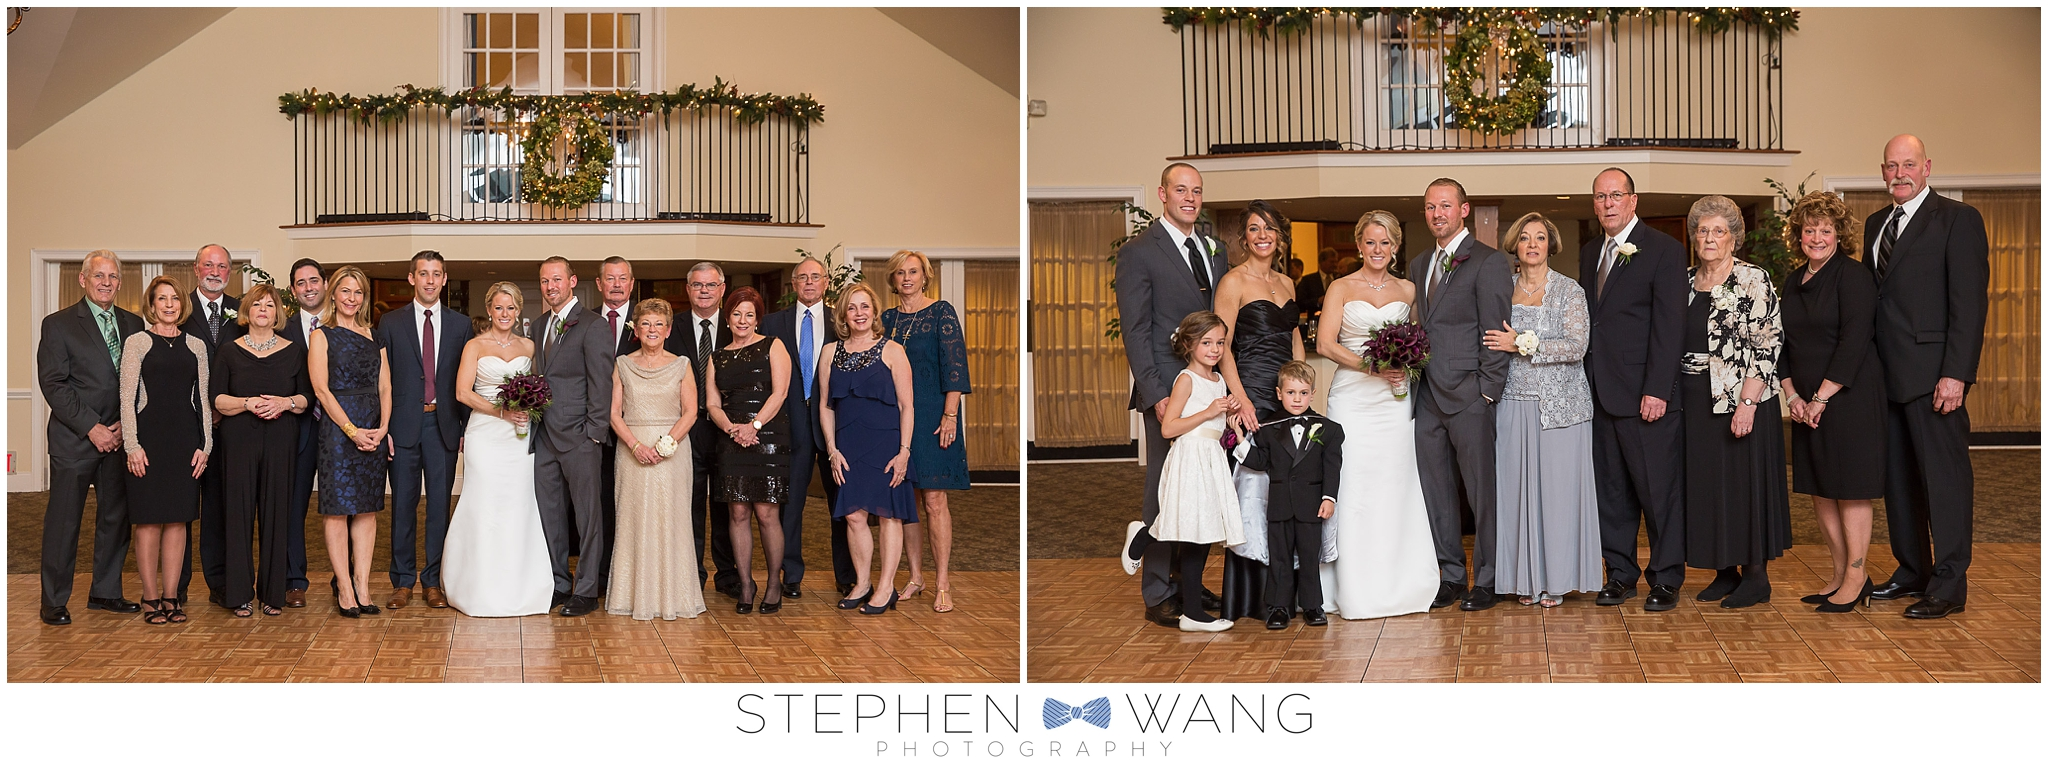 Stephen Wang Photography winter wedding connecticut east haddam riverhouse haddam ct middletown inn christmas wedding photography connecticut photographer-01-15_0029.jpg